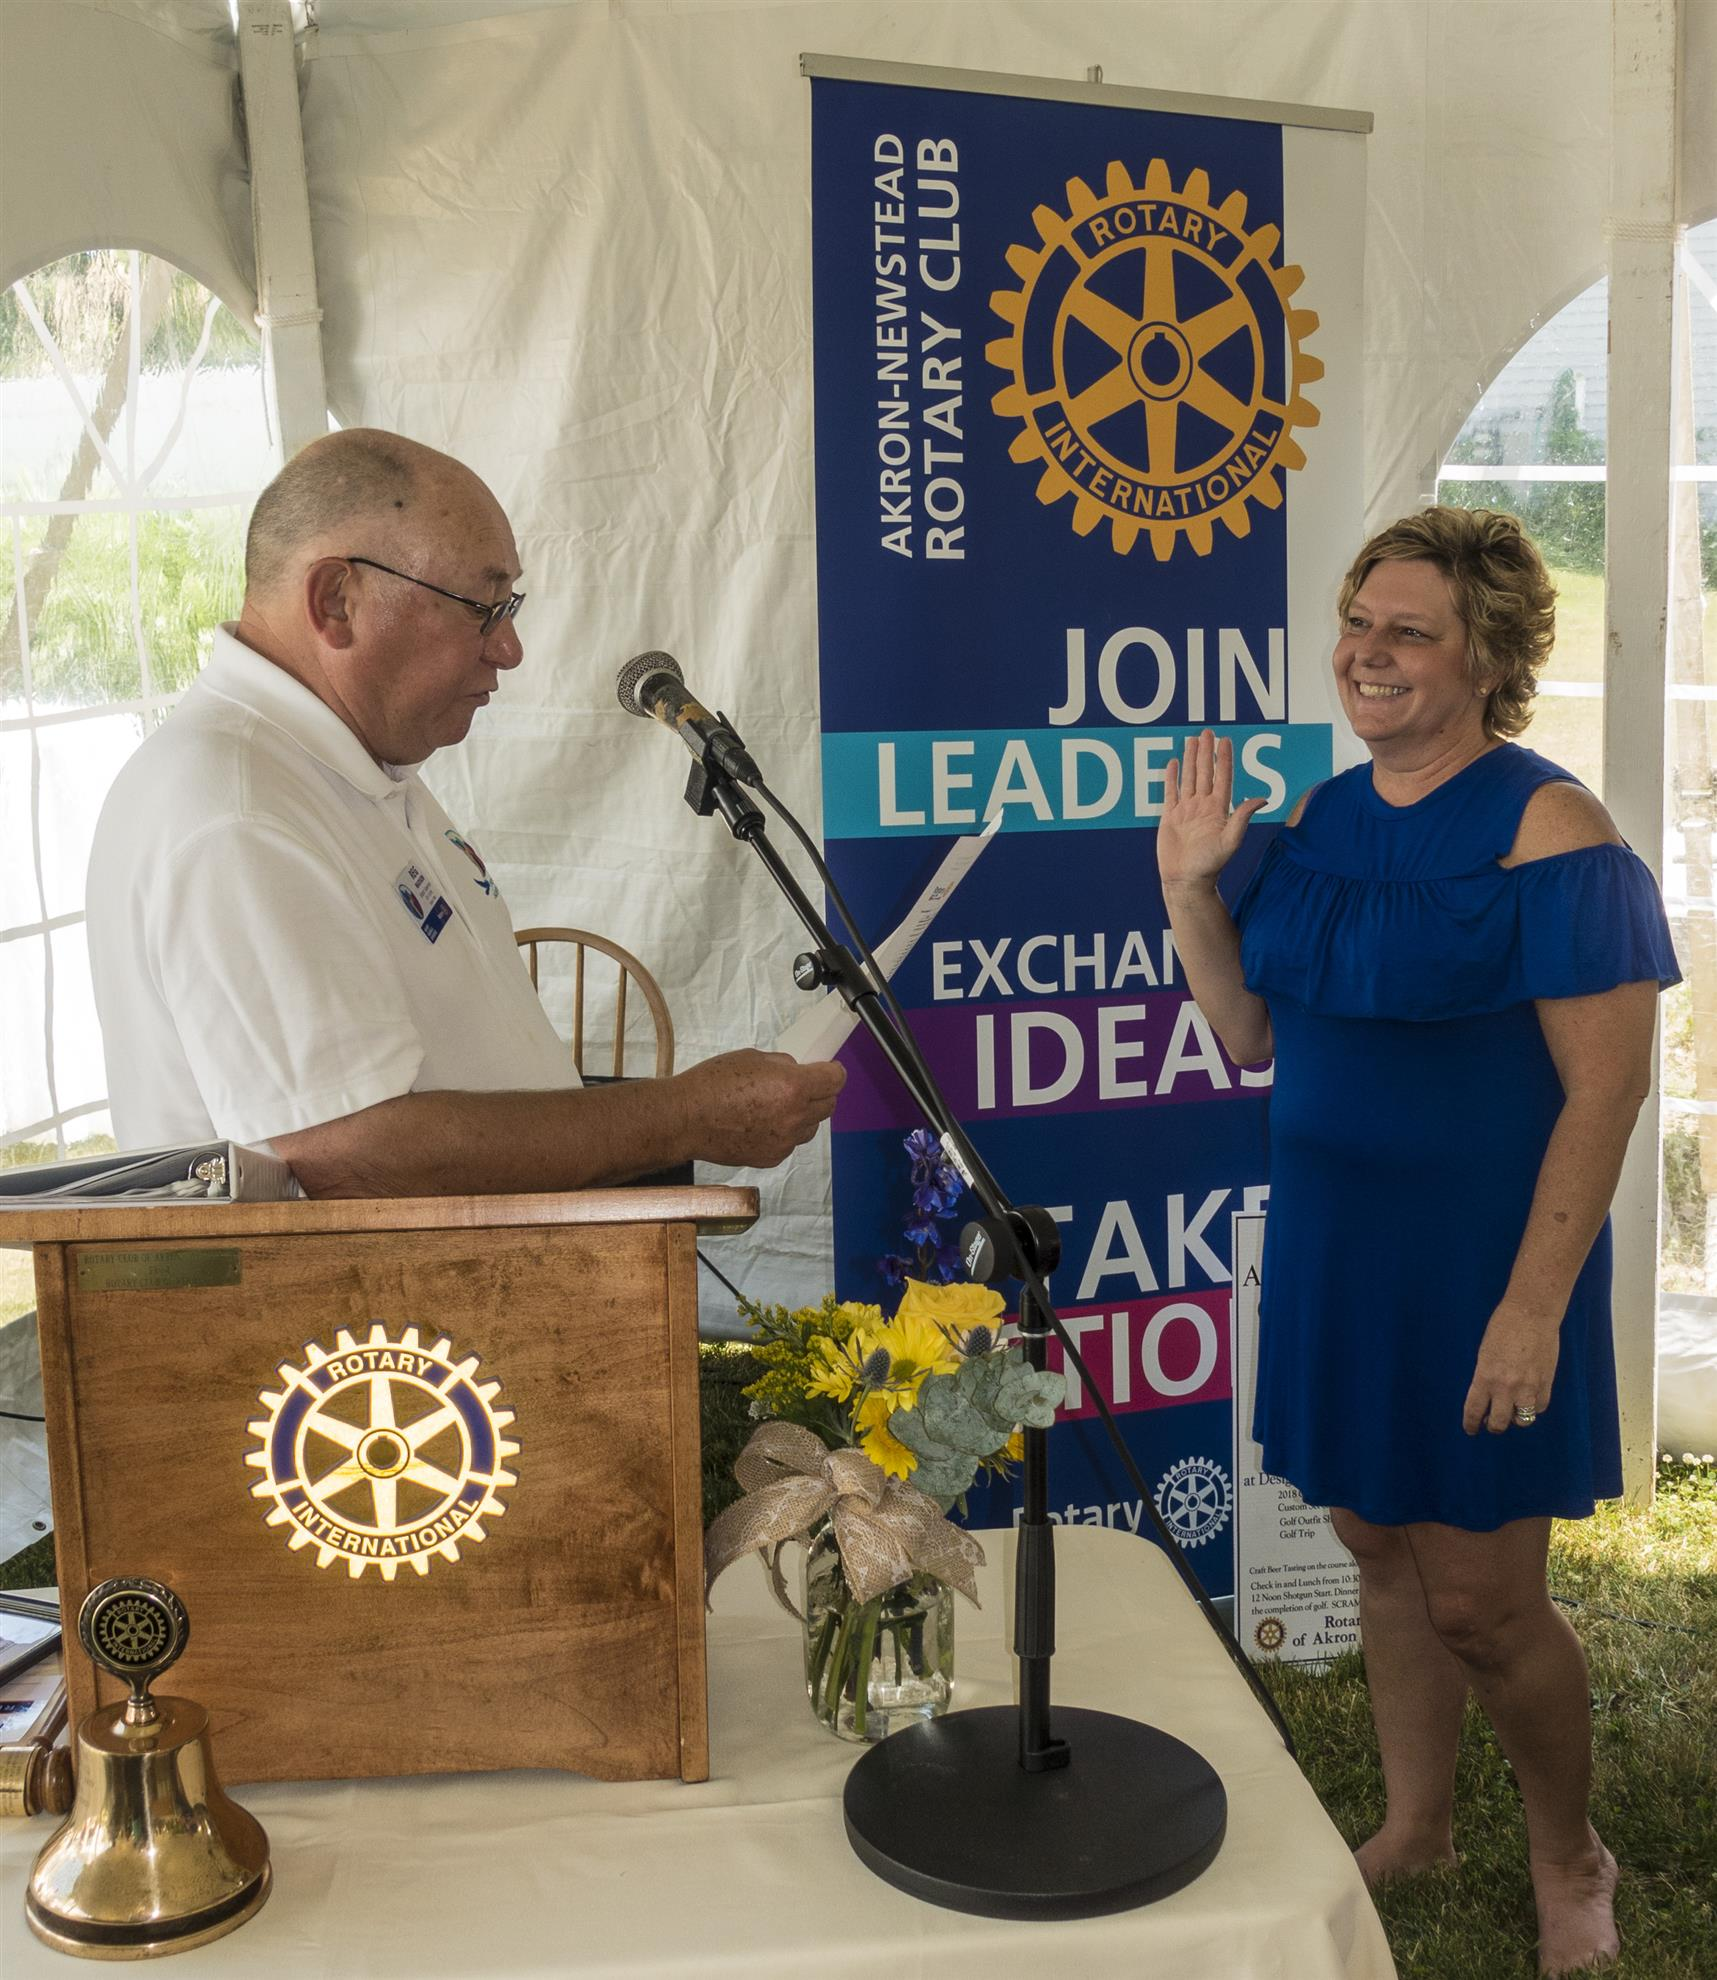 Stories Rotary District 7090 Dont Miss Other Custom Furniture And Circuit Art Projects Seen Here Is The Property With Rotarians A Small Planet On Beautiful Day For Changeover Thanks Paul Mcafee Photos Yes